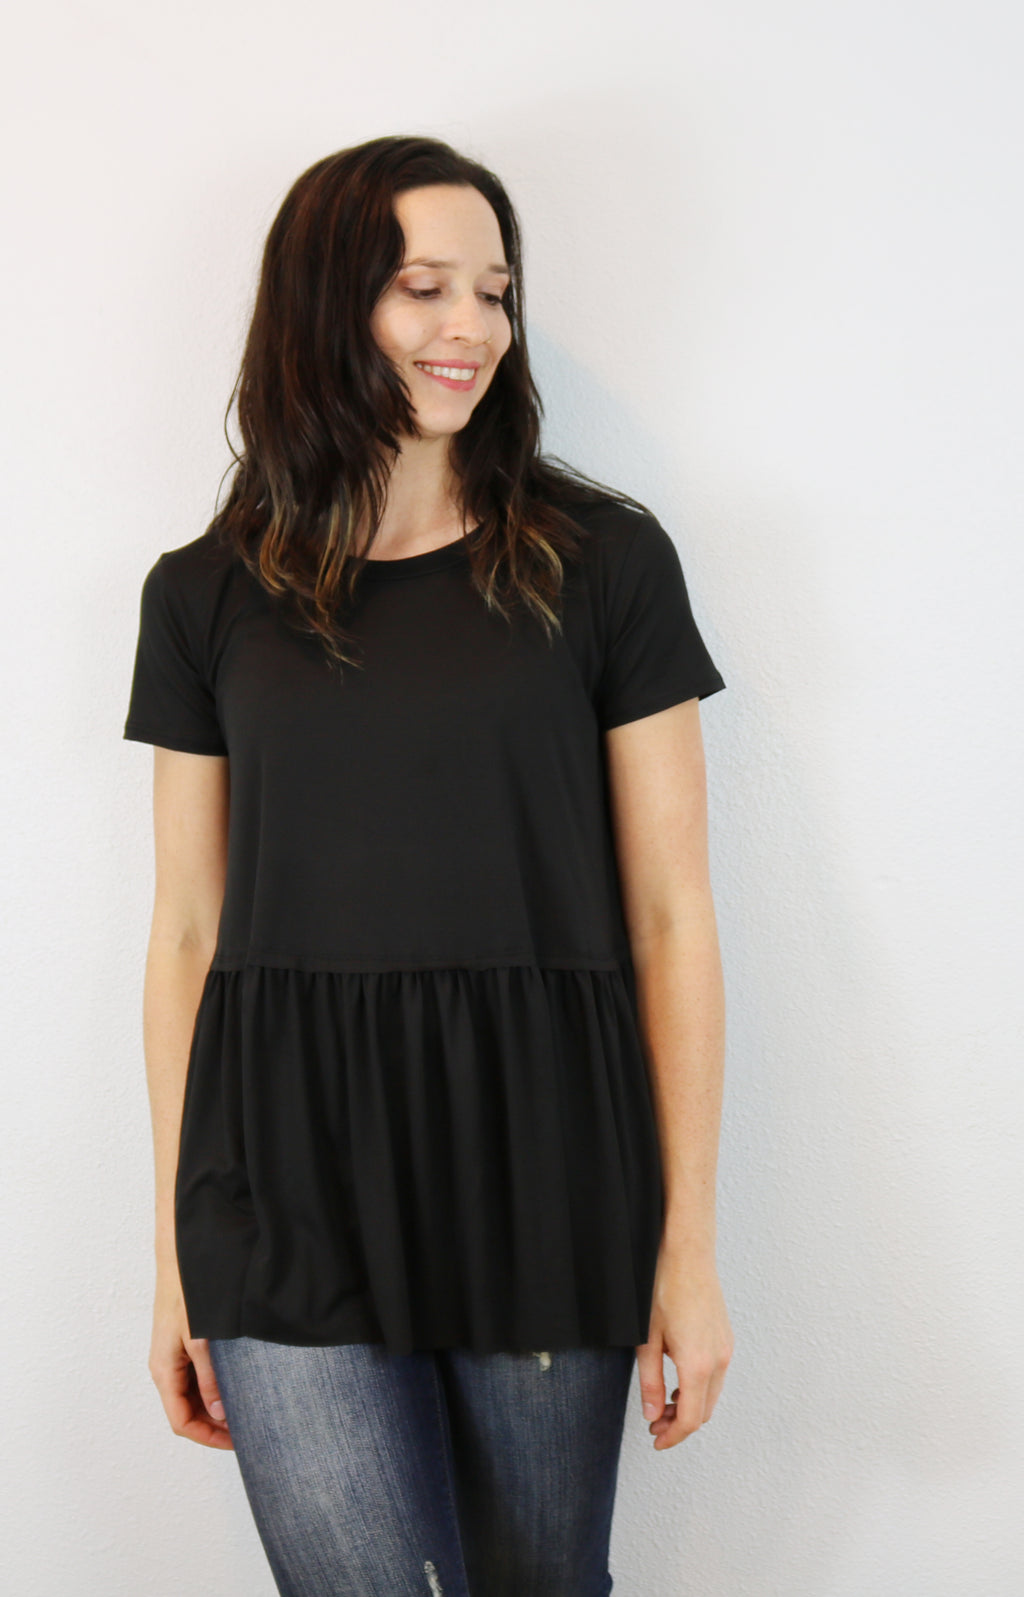 Cambria Peplum Tee in Black